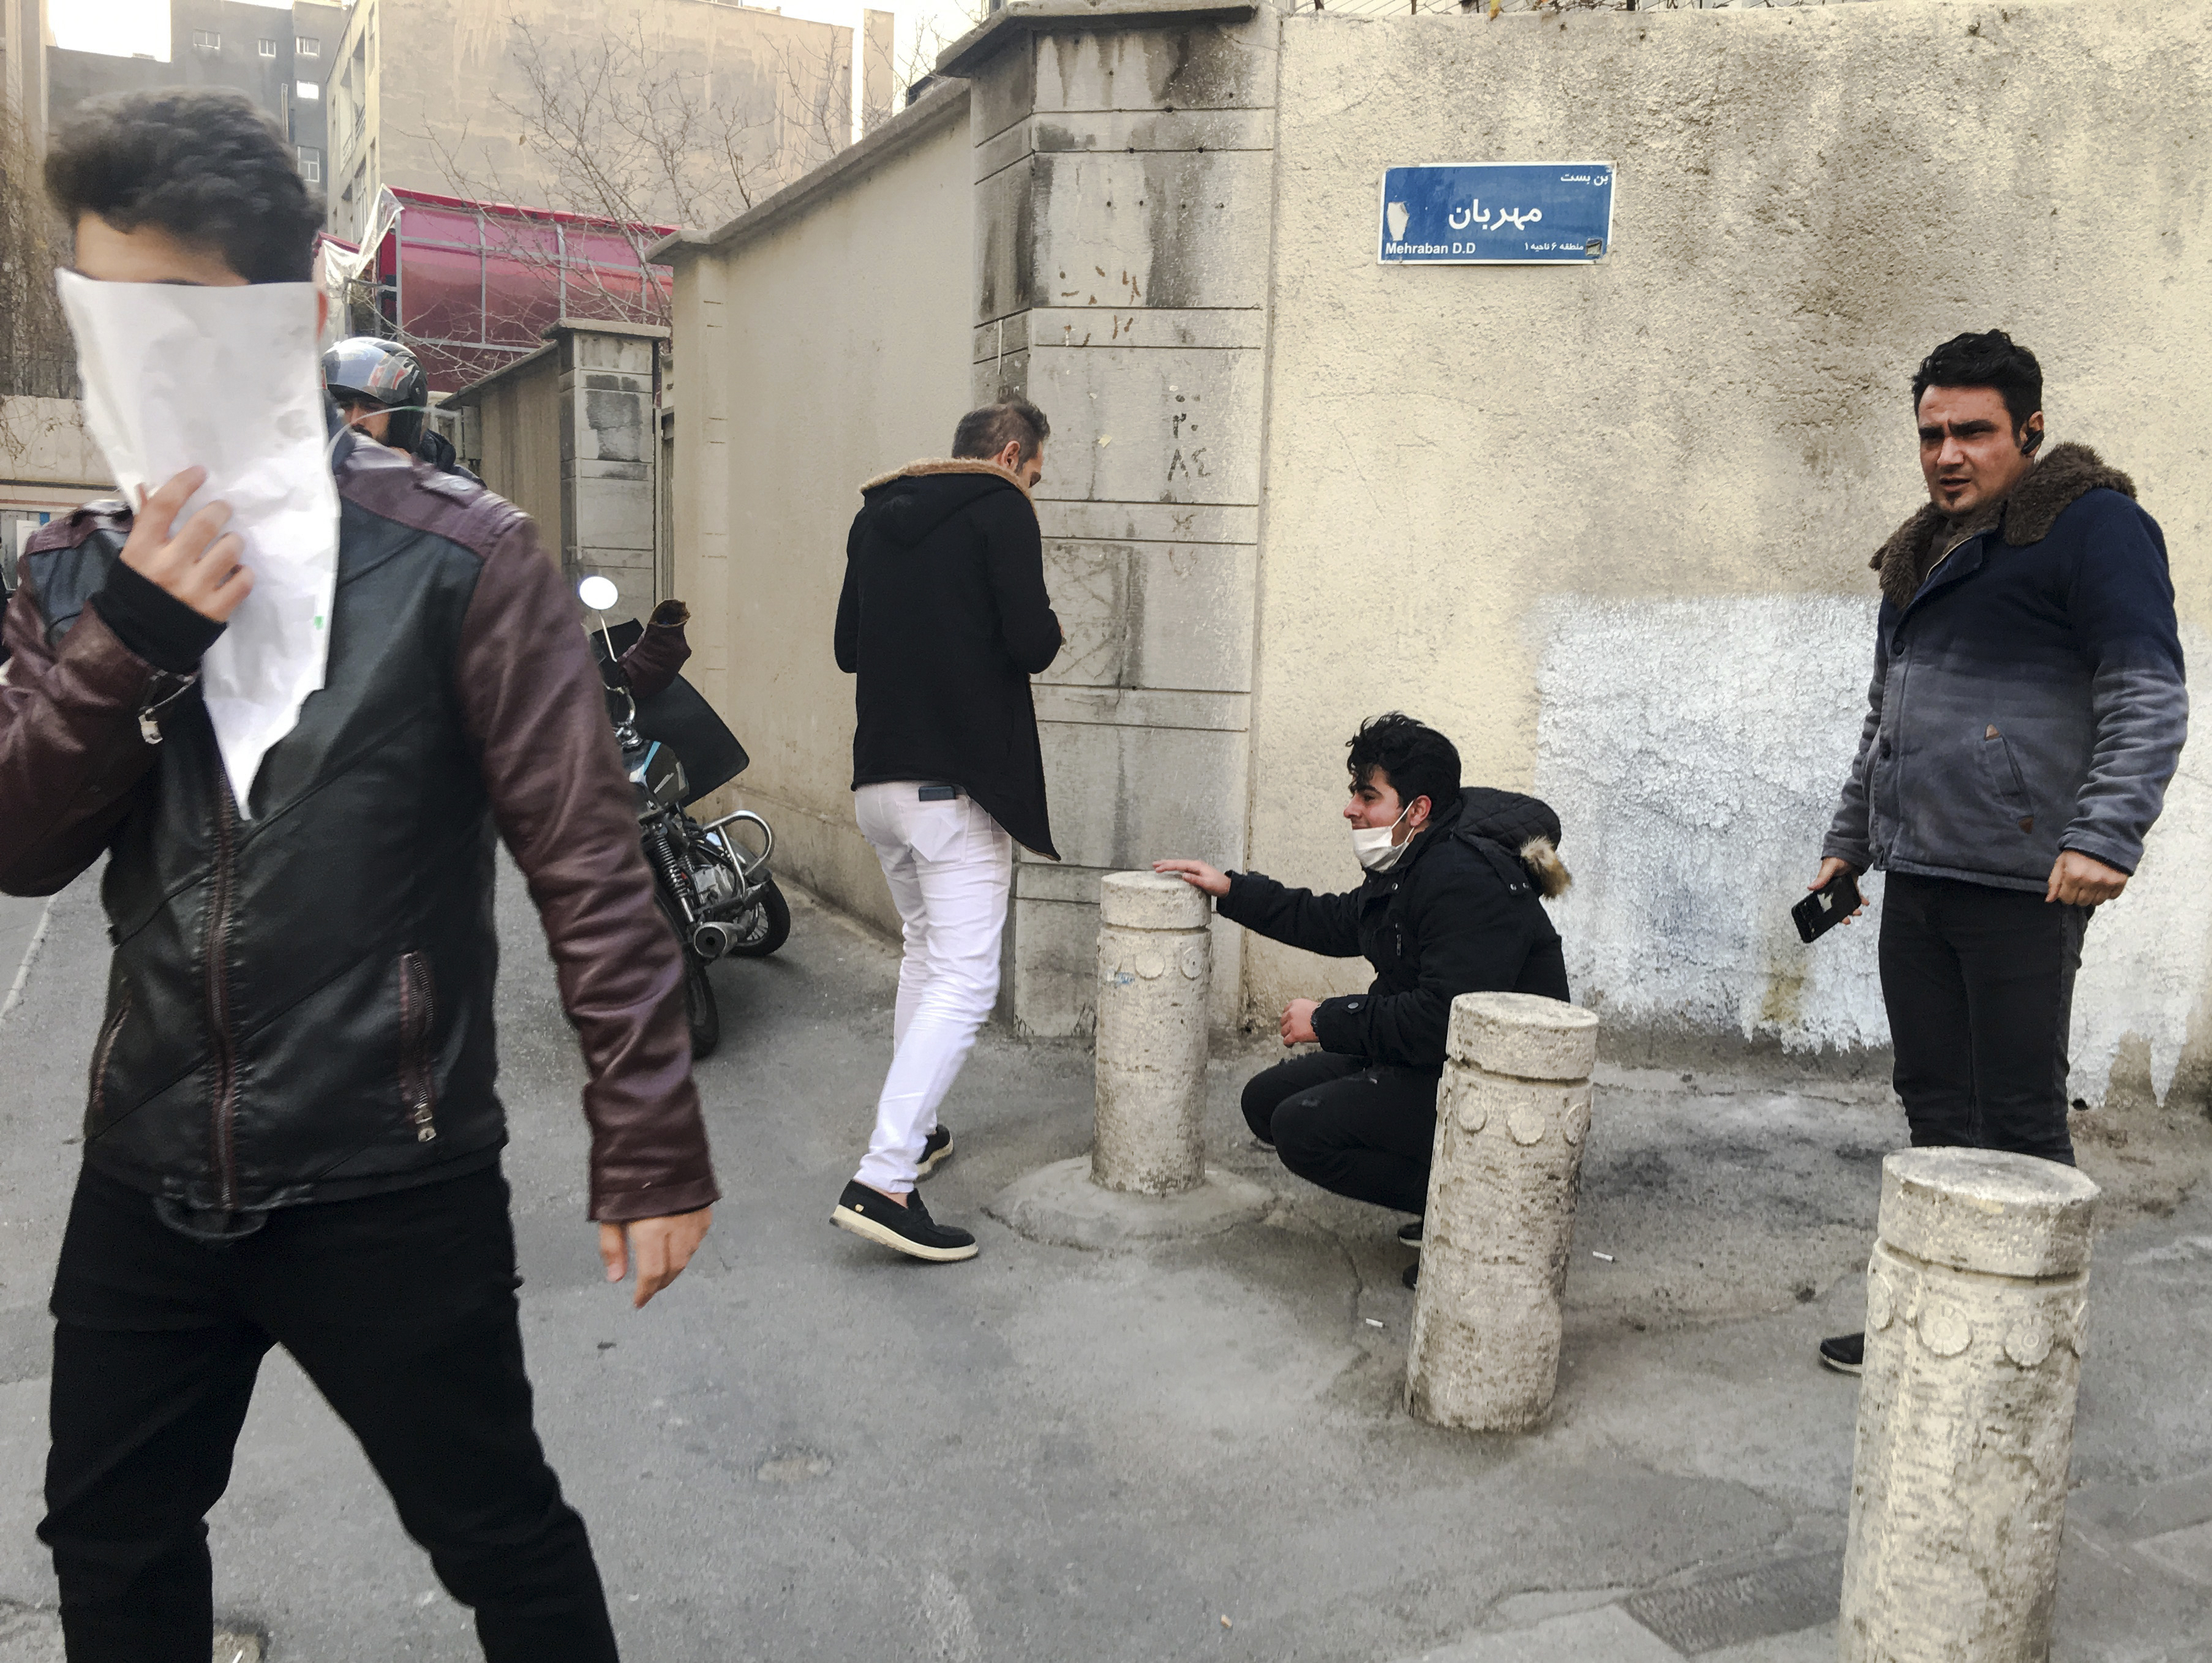 FILE - In this photo taken by an individual not employed by the Associated Press and obtained by the AP outside of Iran, people are affected by tear gas fired by anti-riot Iranian police to disperse demonstrators in a protest over Iran's weak economy...